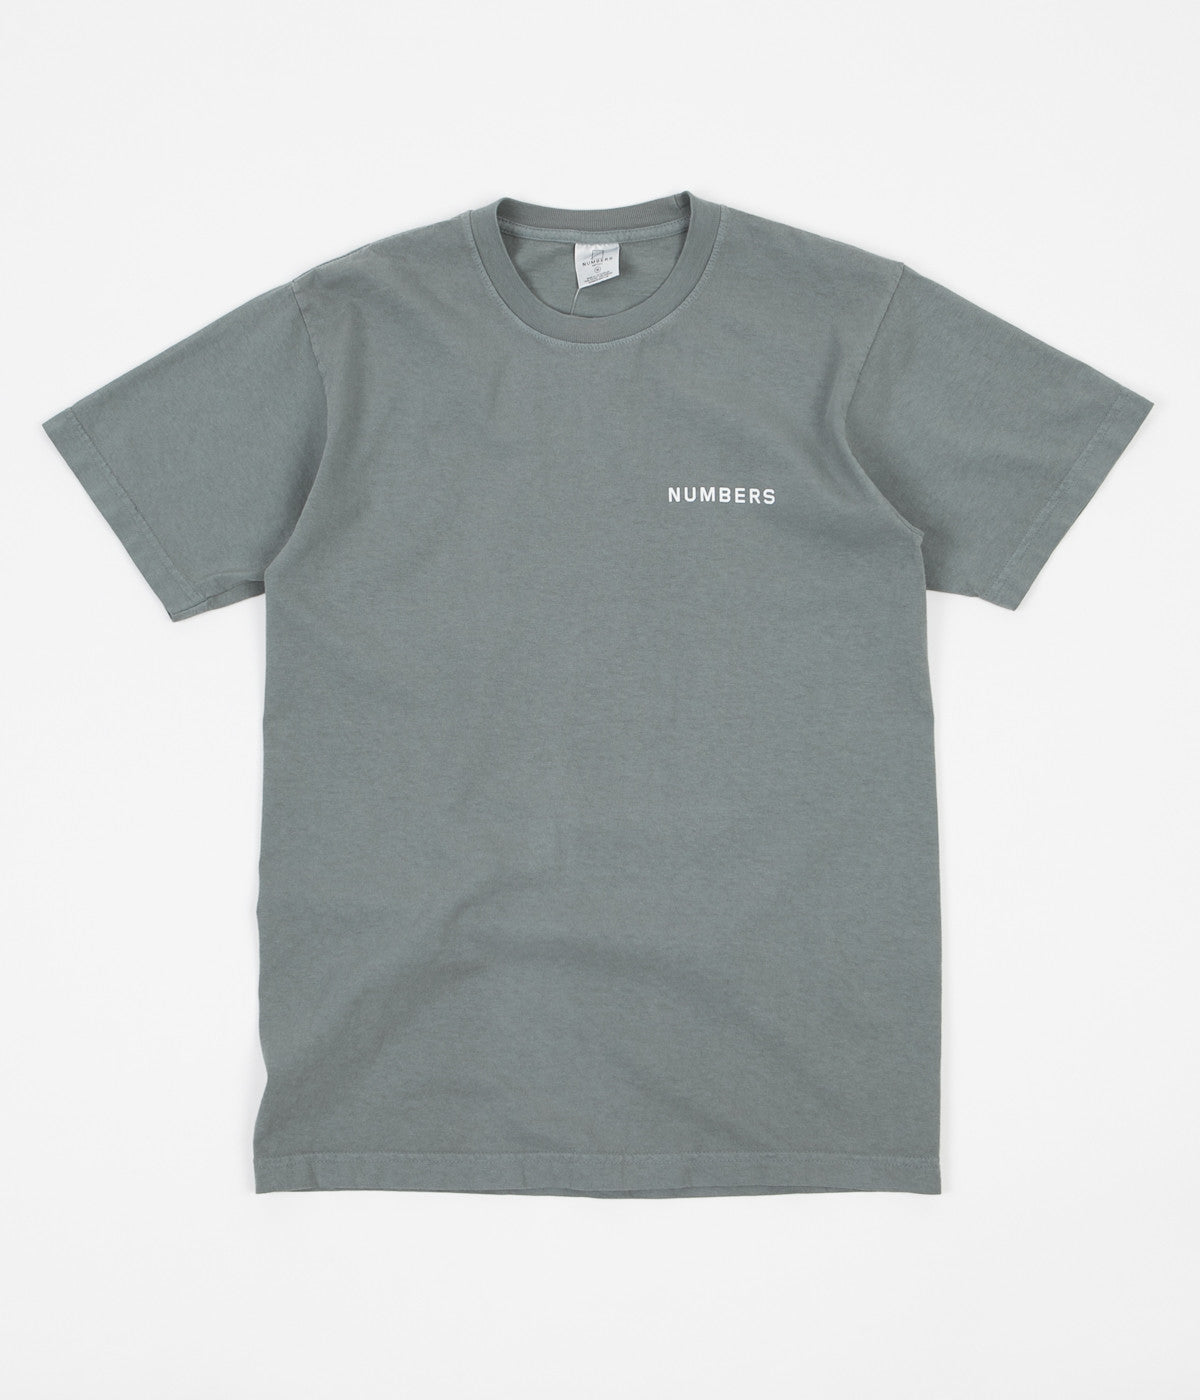 Numbers 12:45 Angel T-Shirt - Sage